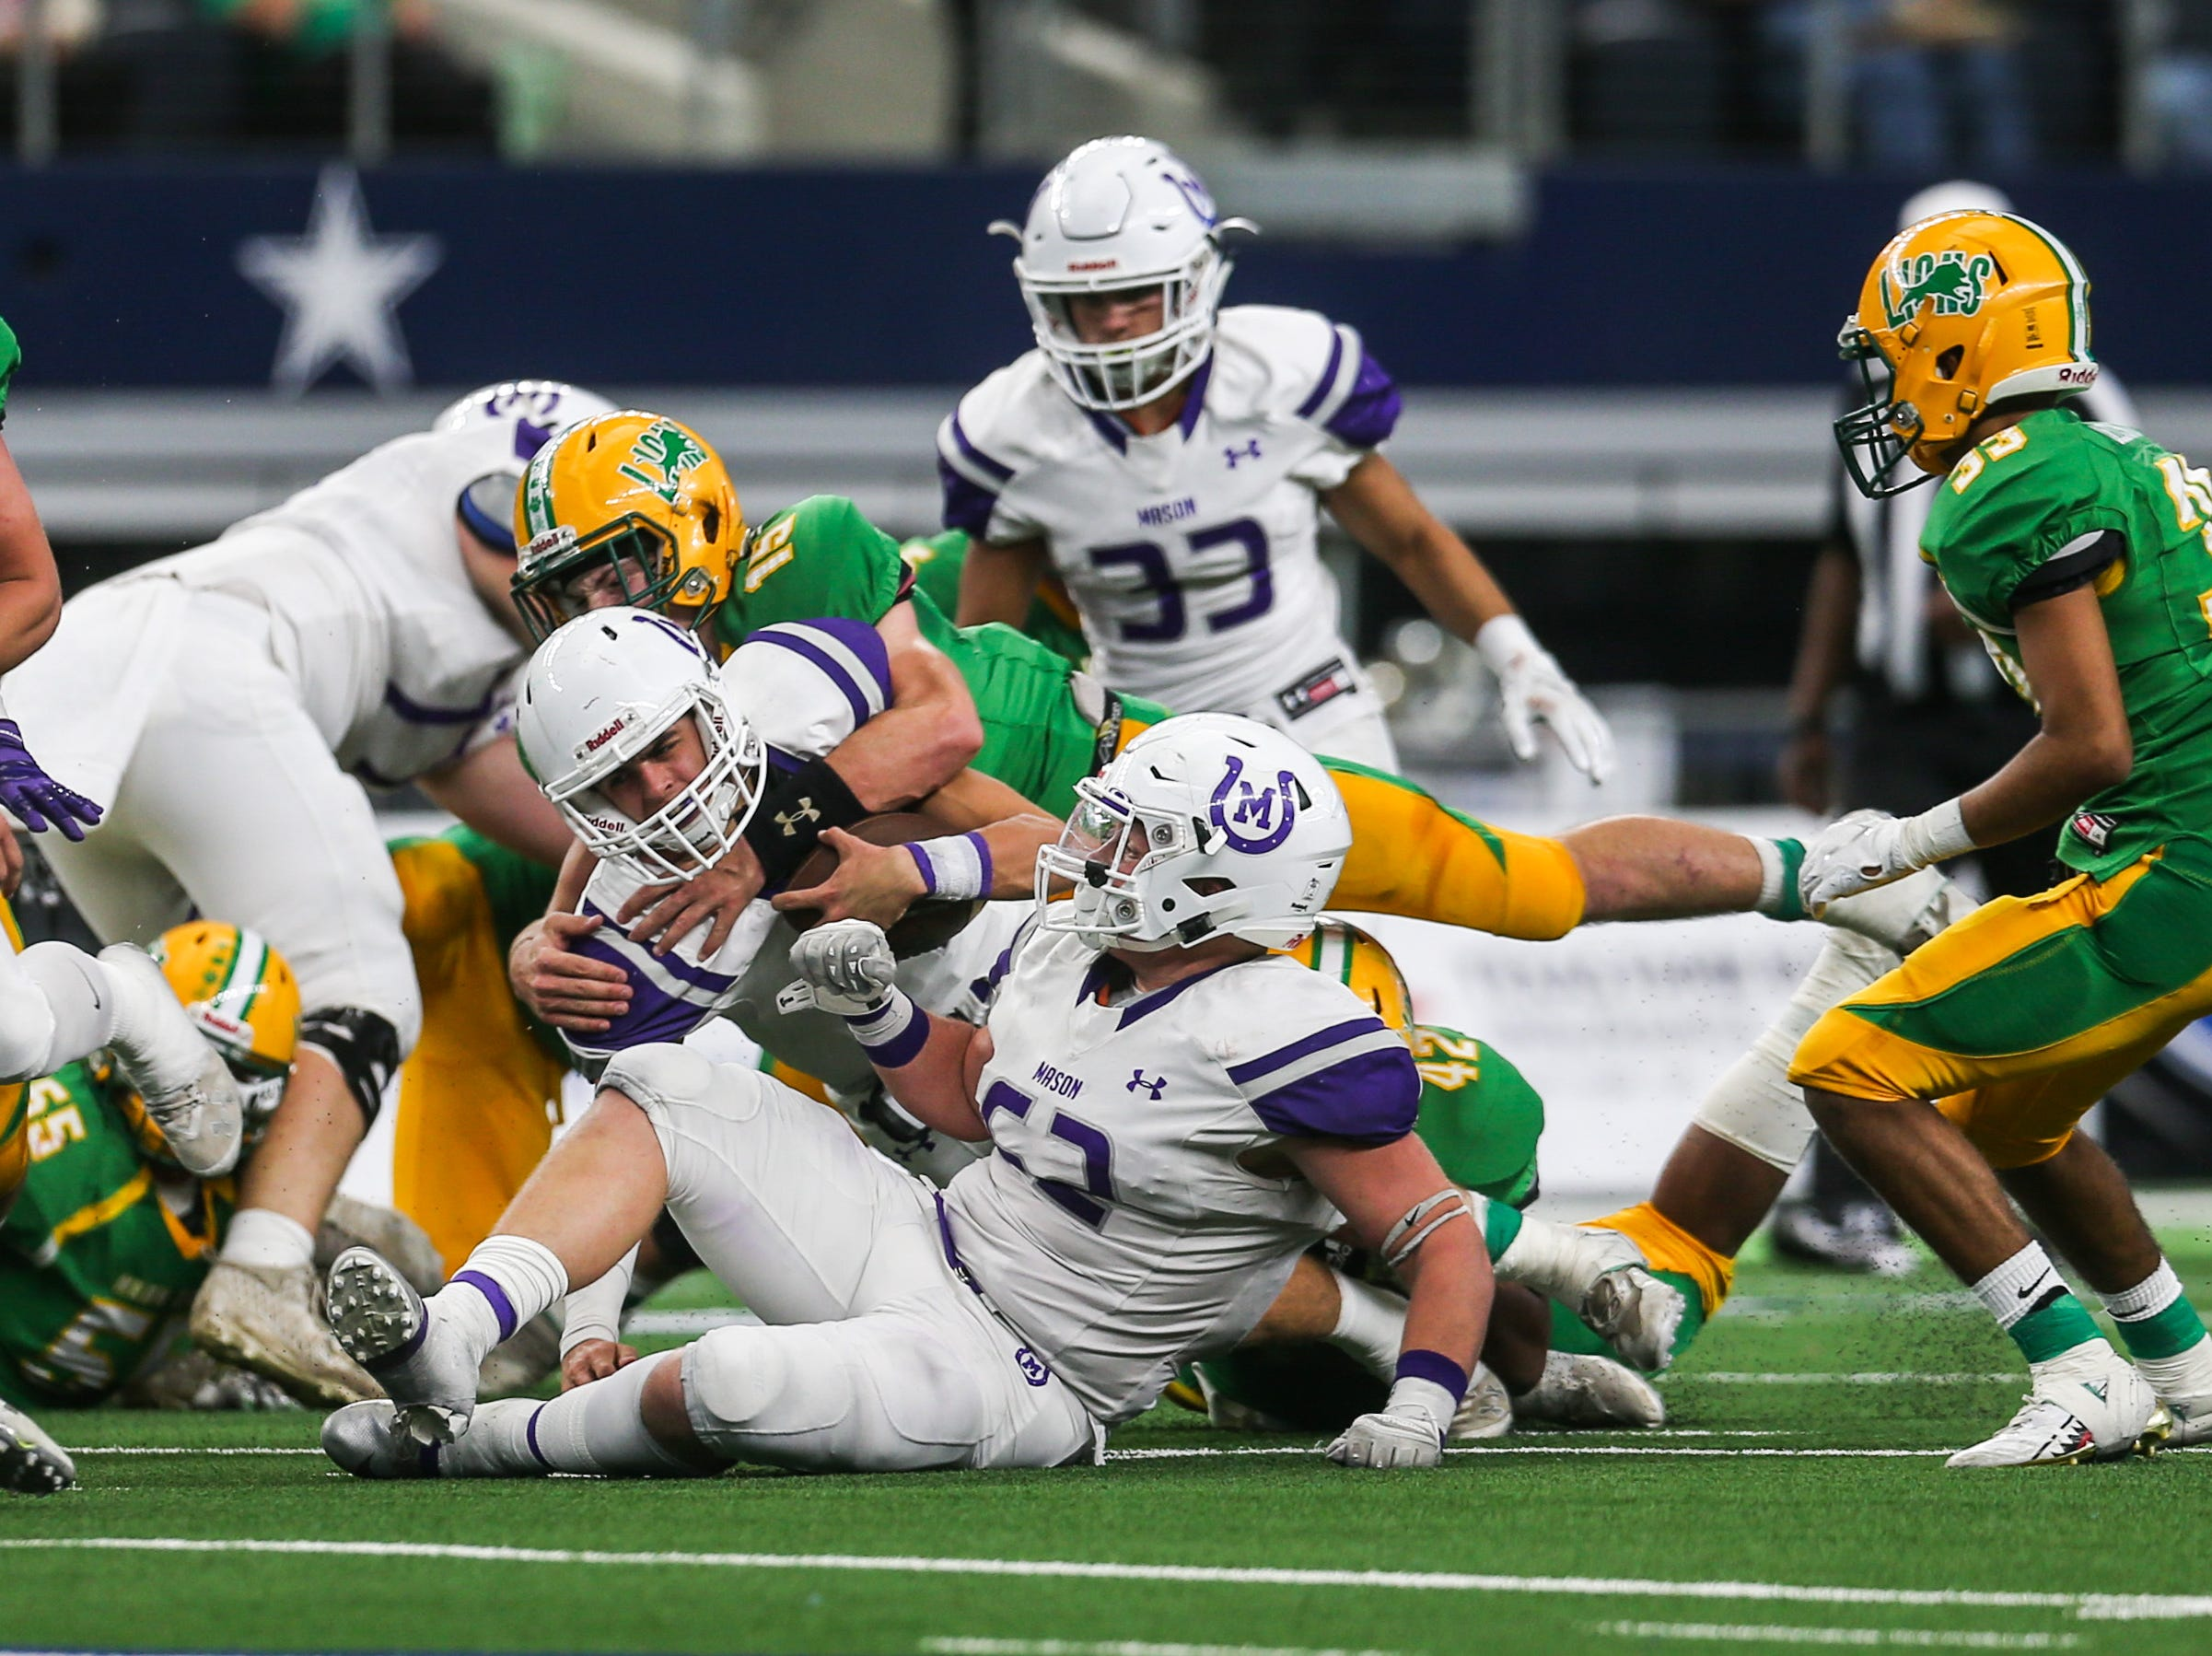 Mason's ball carrier is tackled by New Deal during the championship game Thursday, Dec. 20, at the AT&T Stadium.